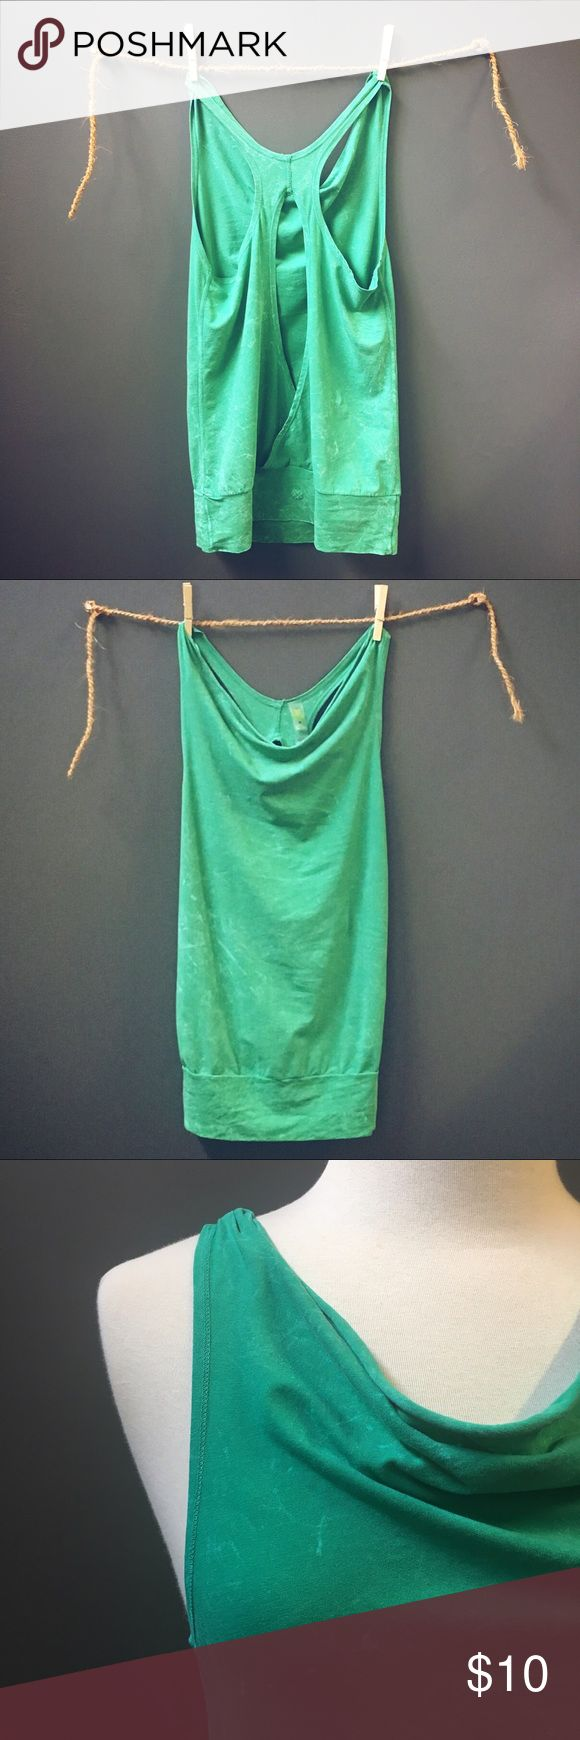 Keyhole Tank Exercise Top Stretch Knit Keyhole exercise tank top. Bright green burnout color. 92% cotton 8% elastane. Tag reads:  Anue Size M. Never worn. Tops Tank Tops